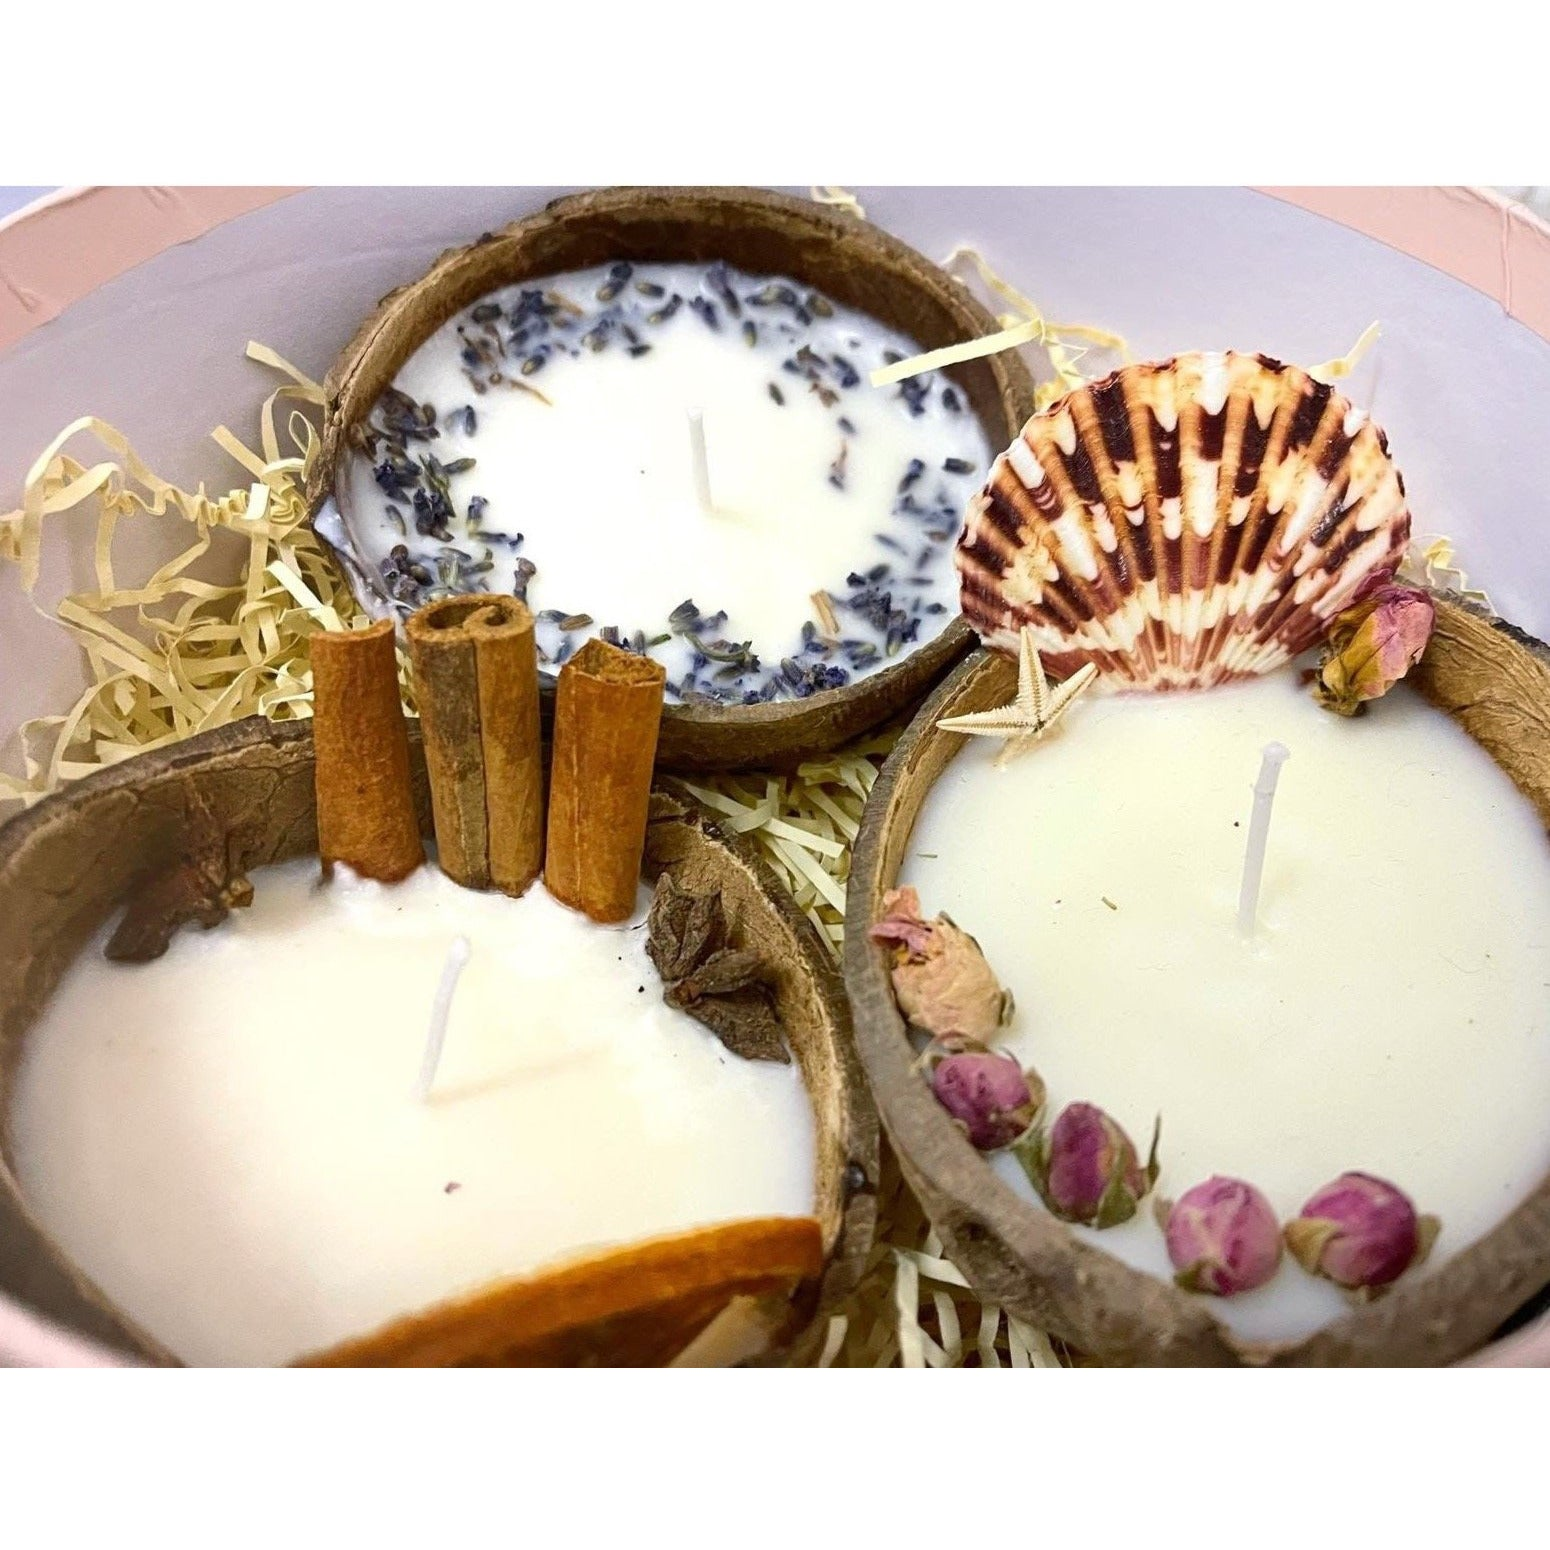 NEW 3 Coconut Candles Gift Set with Coconut & Vanilla, Lavender, Cinnamon&Orange gentle scented Premium Soy candles in coconut shell - natoorio